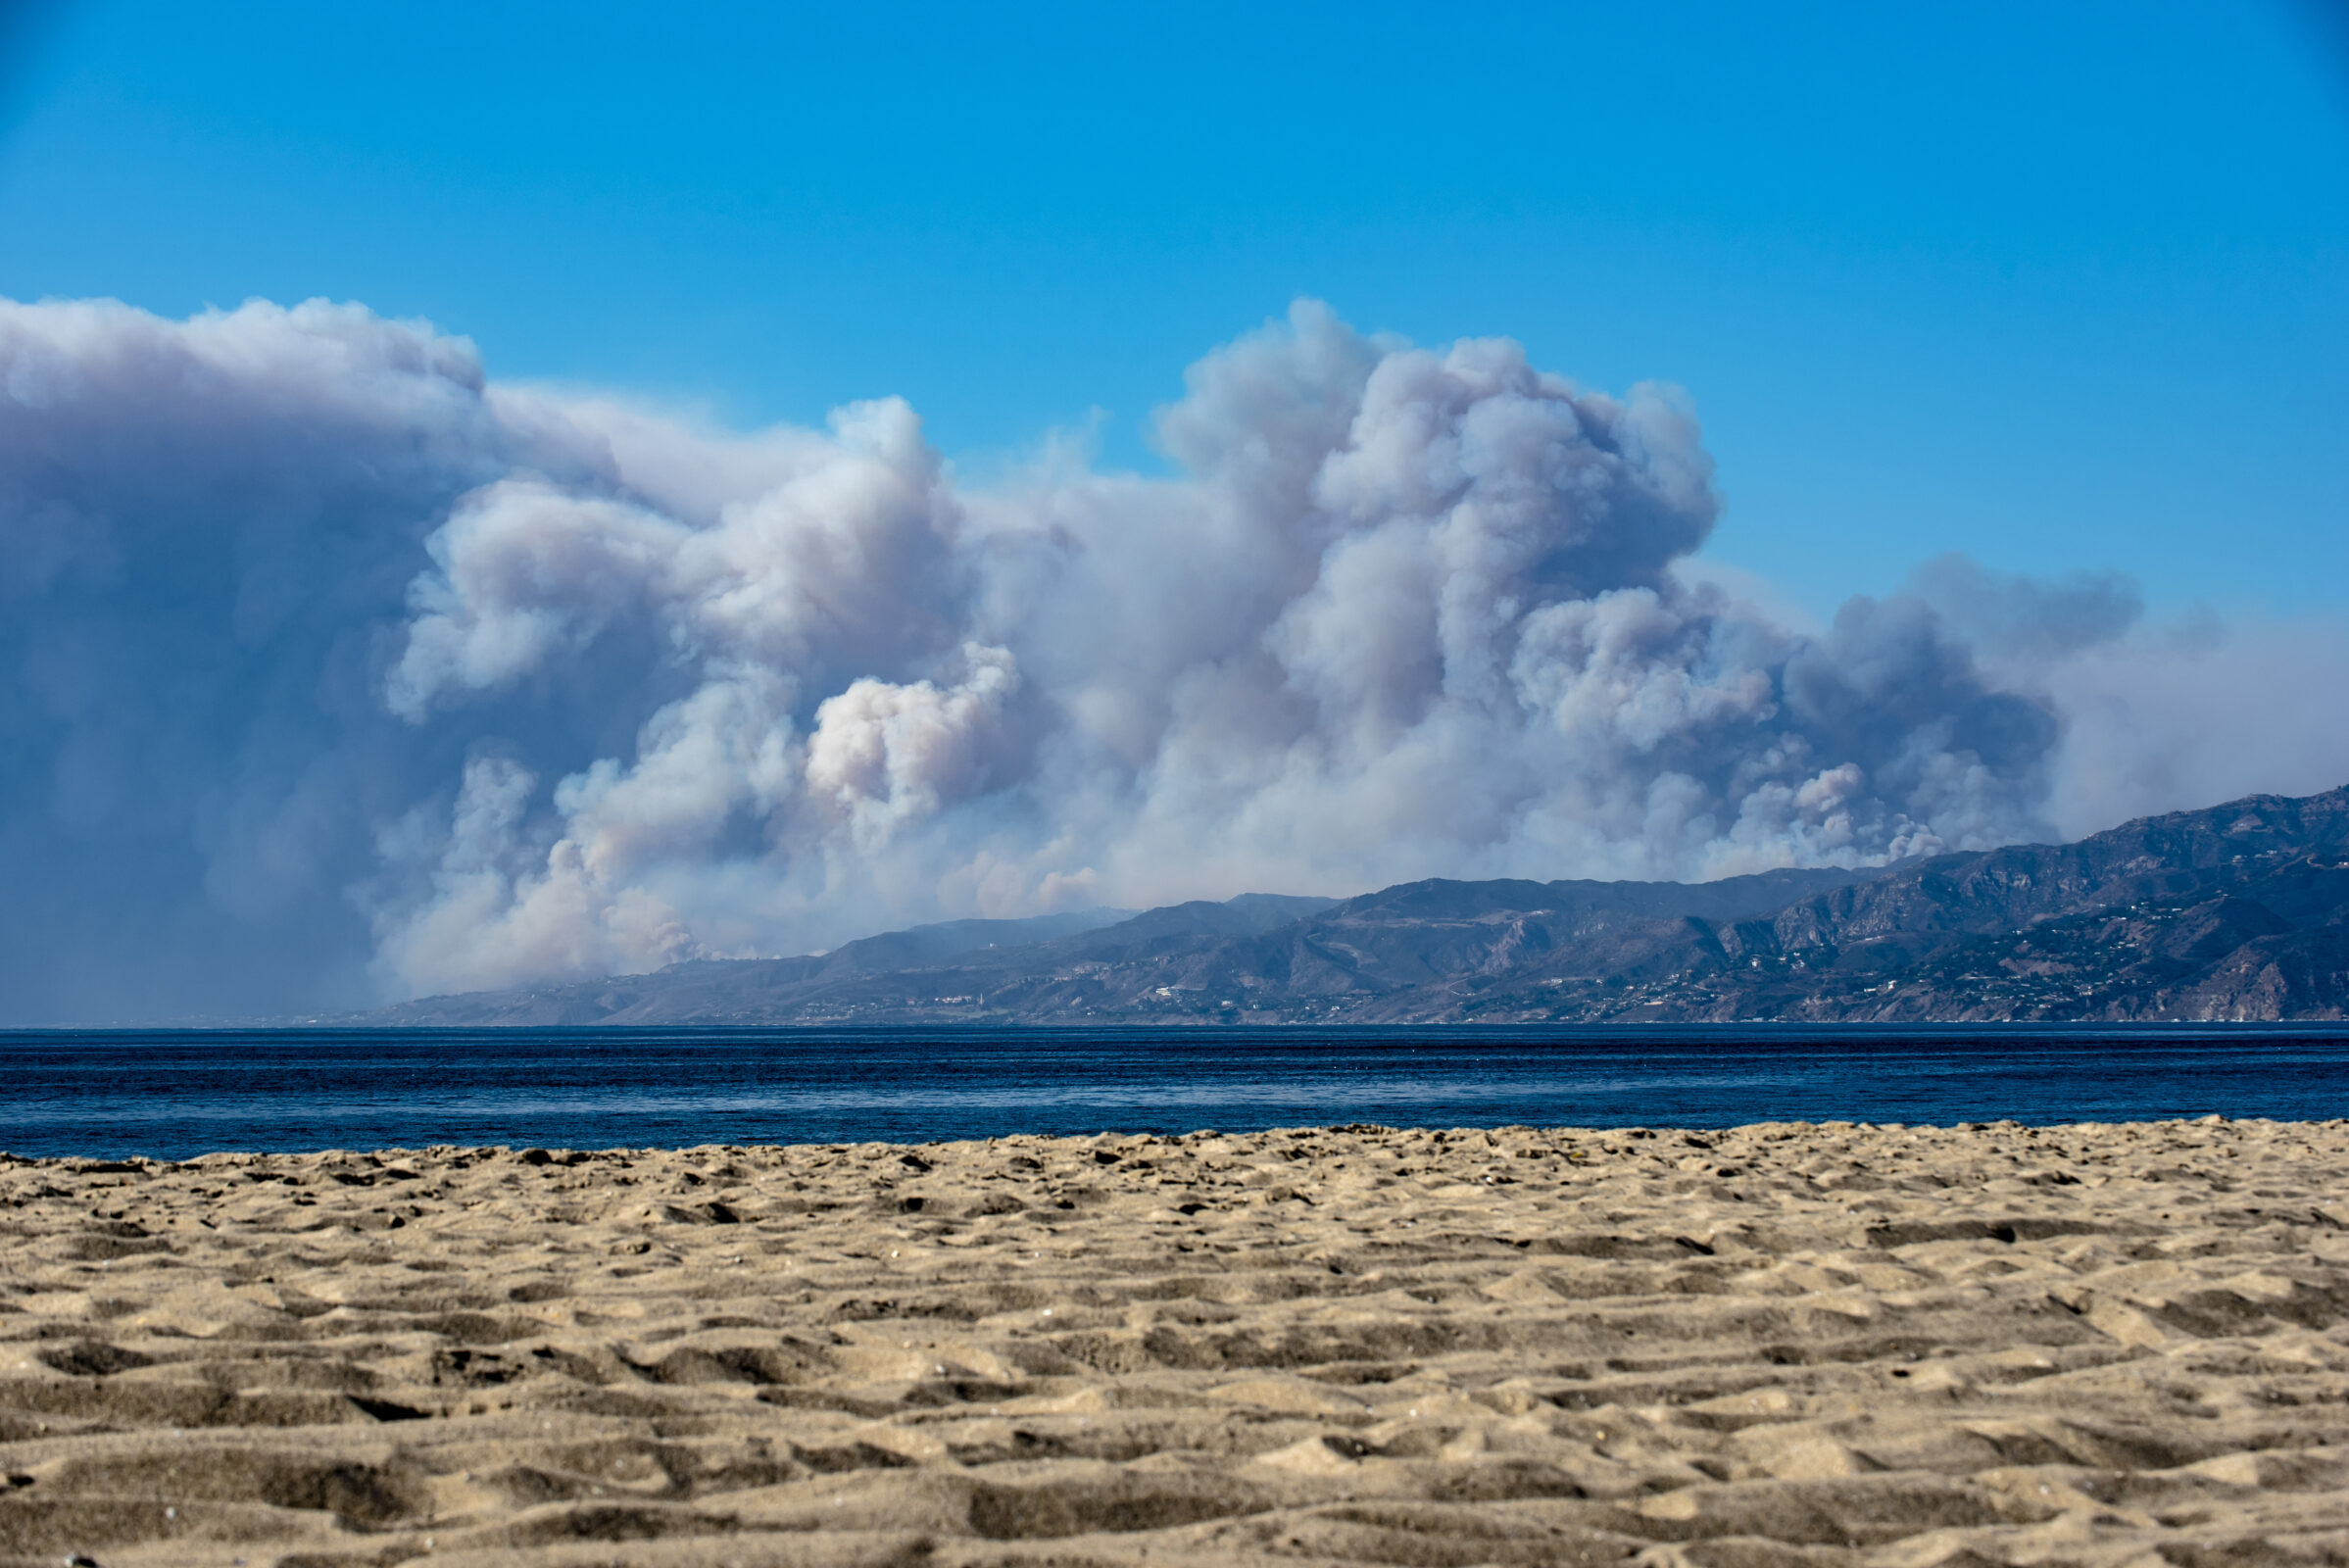 Large plumes of smoke rise from the Woolsey Fire burning in Malibu, California. Camera angle is looking across Santa Monica Bay towards Malibu and Santa Monica Mountains.